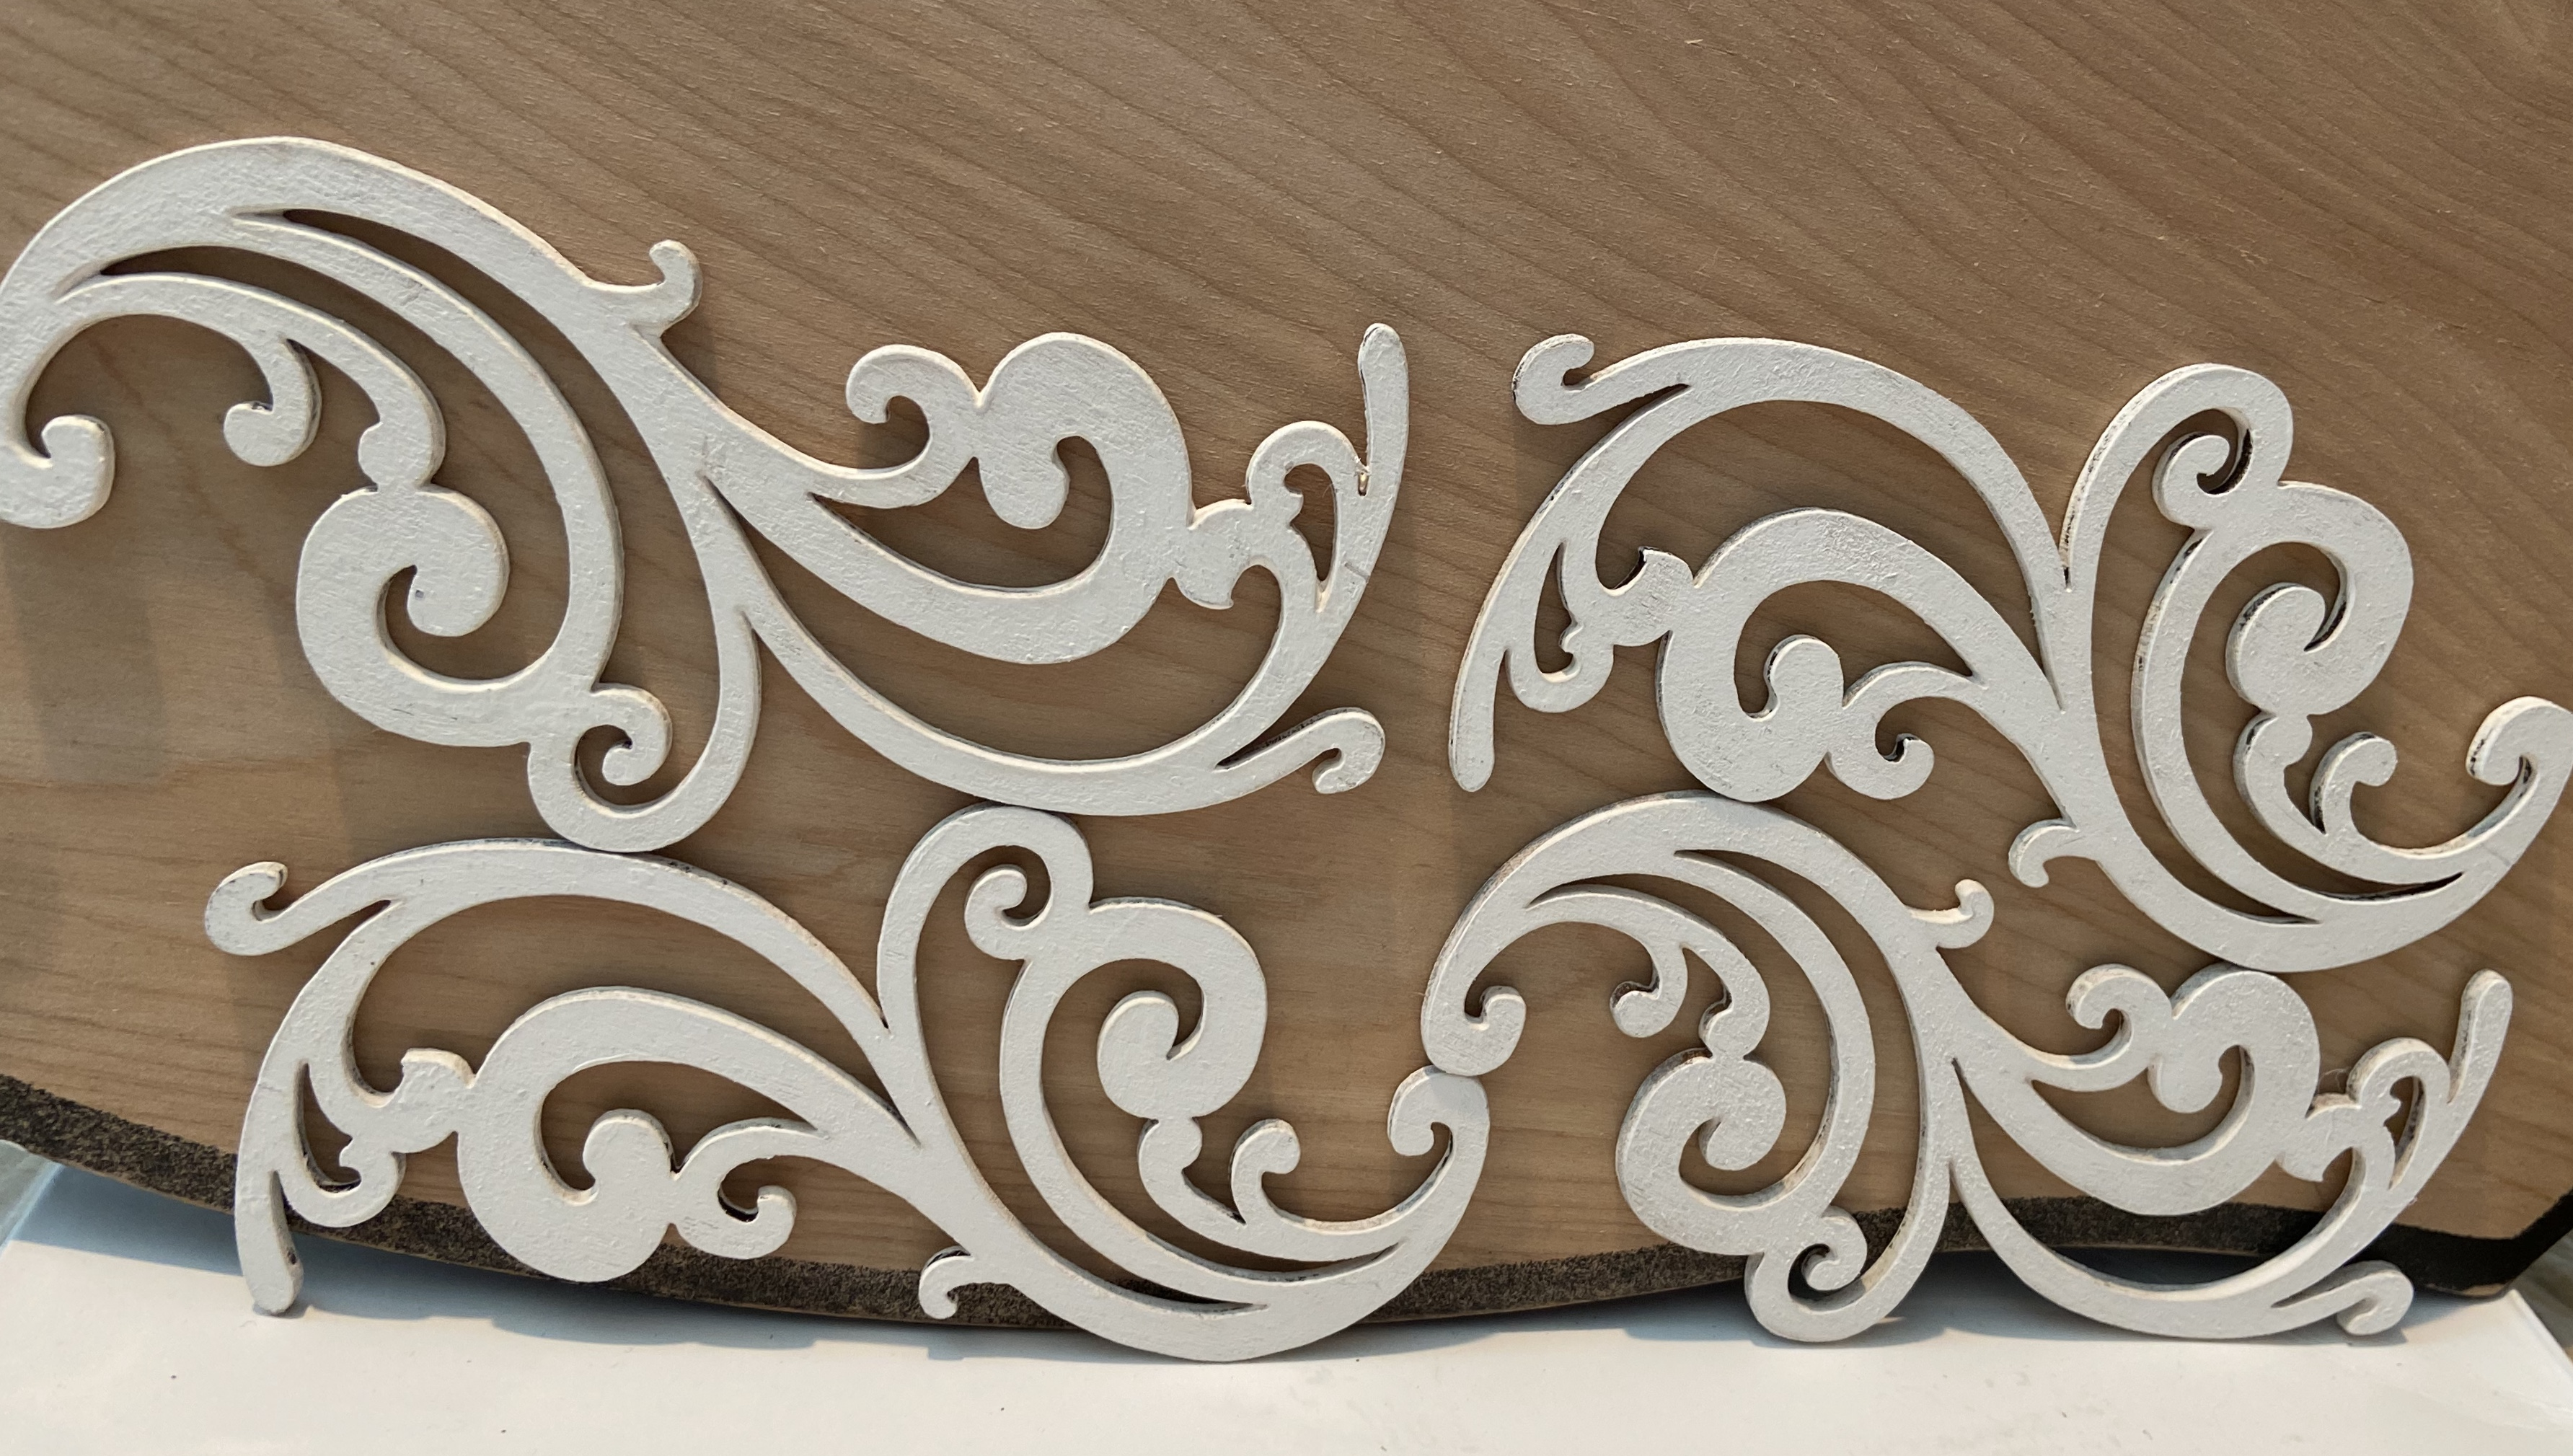 Wooden Scrolls painted white used in vintage lamp makeover.